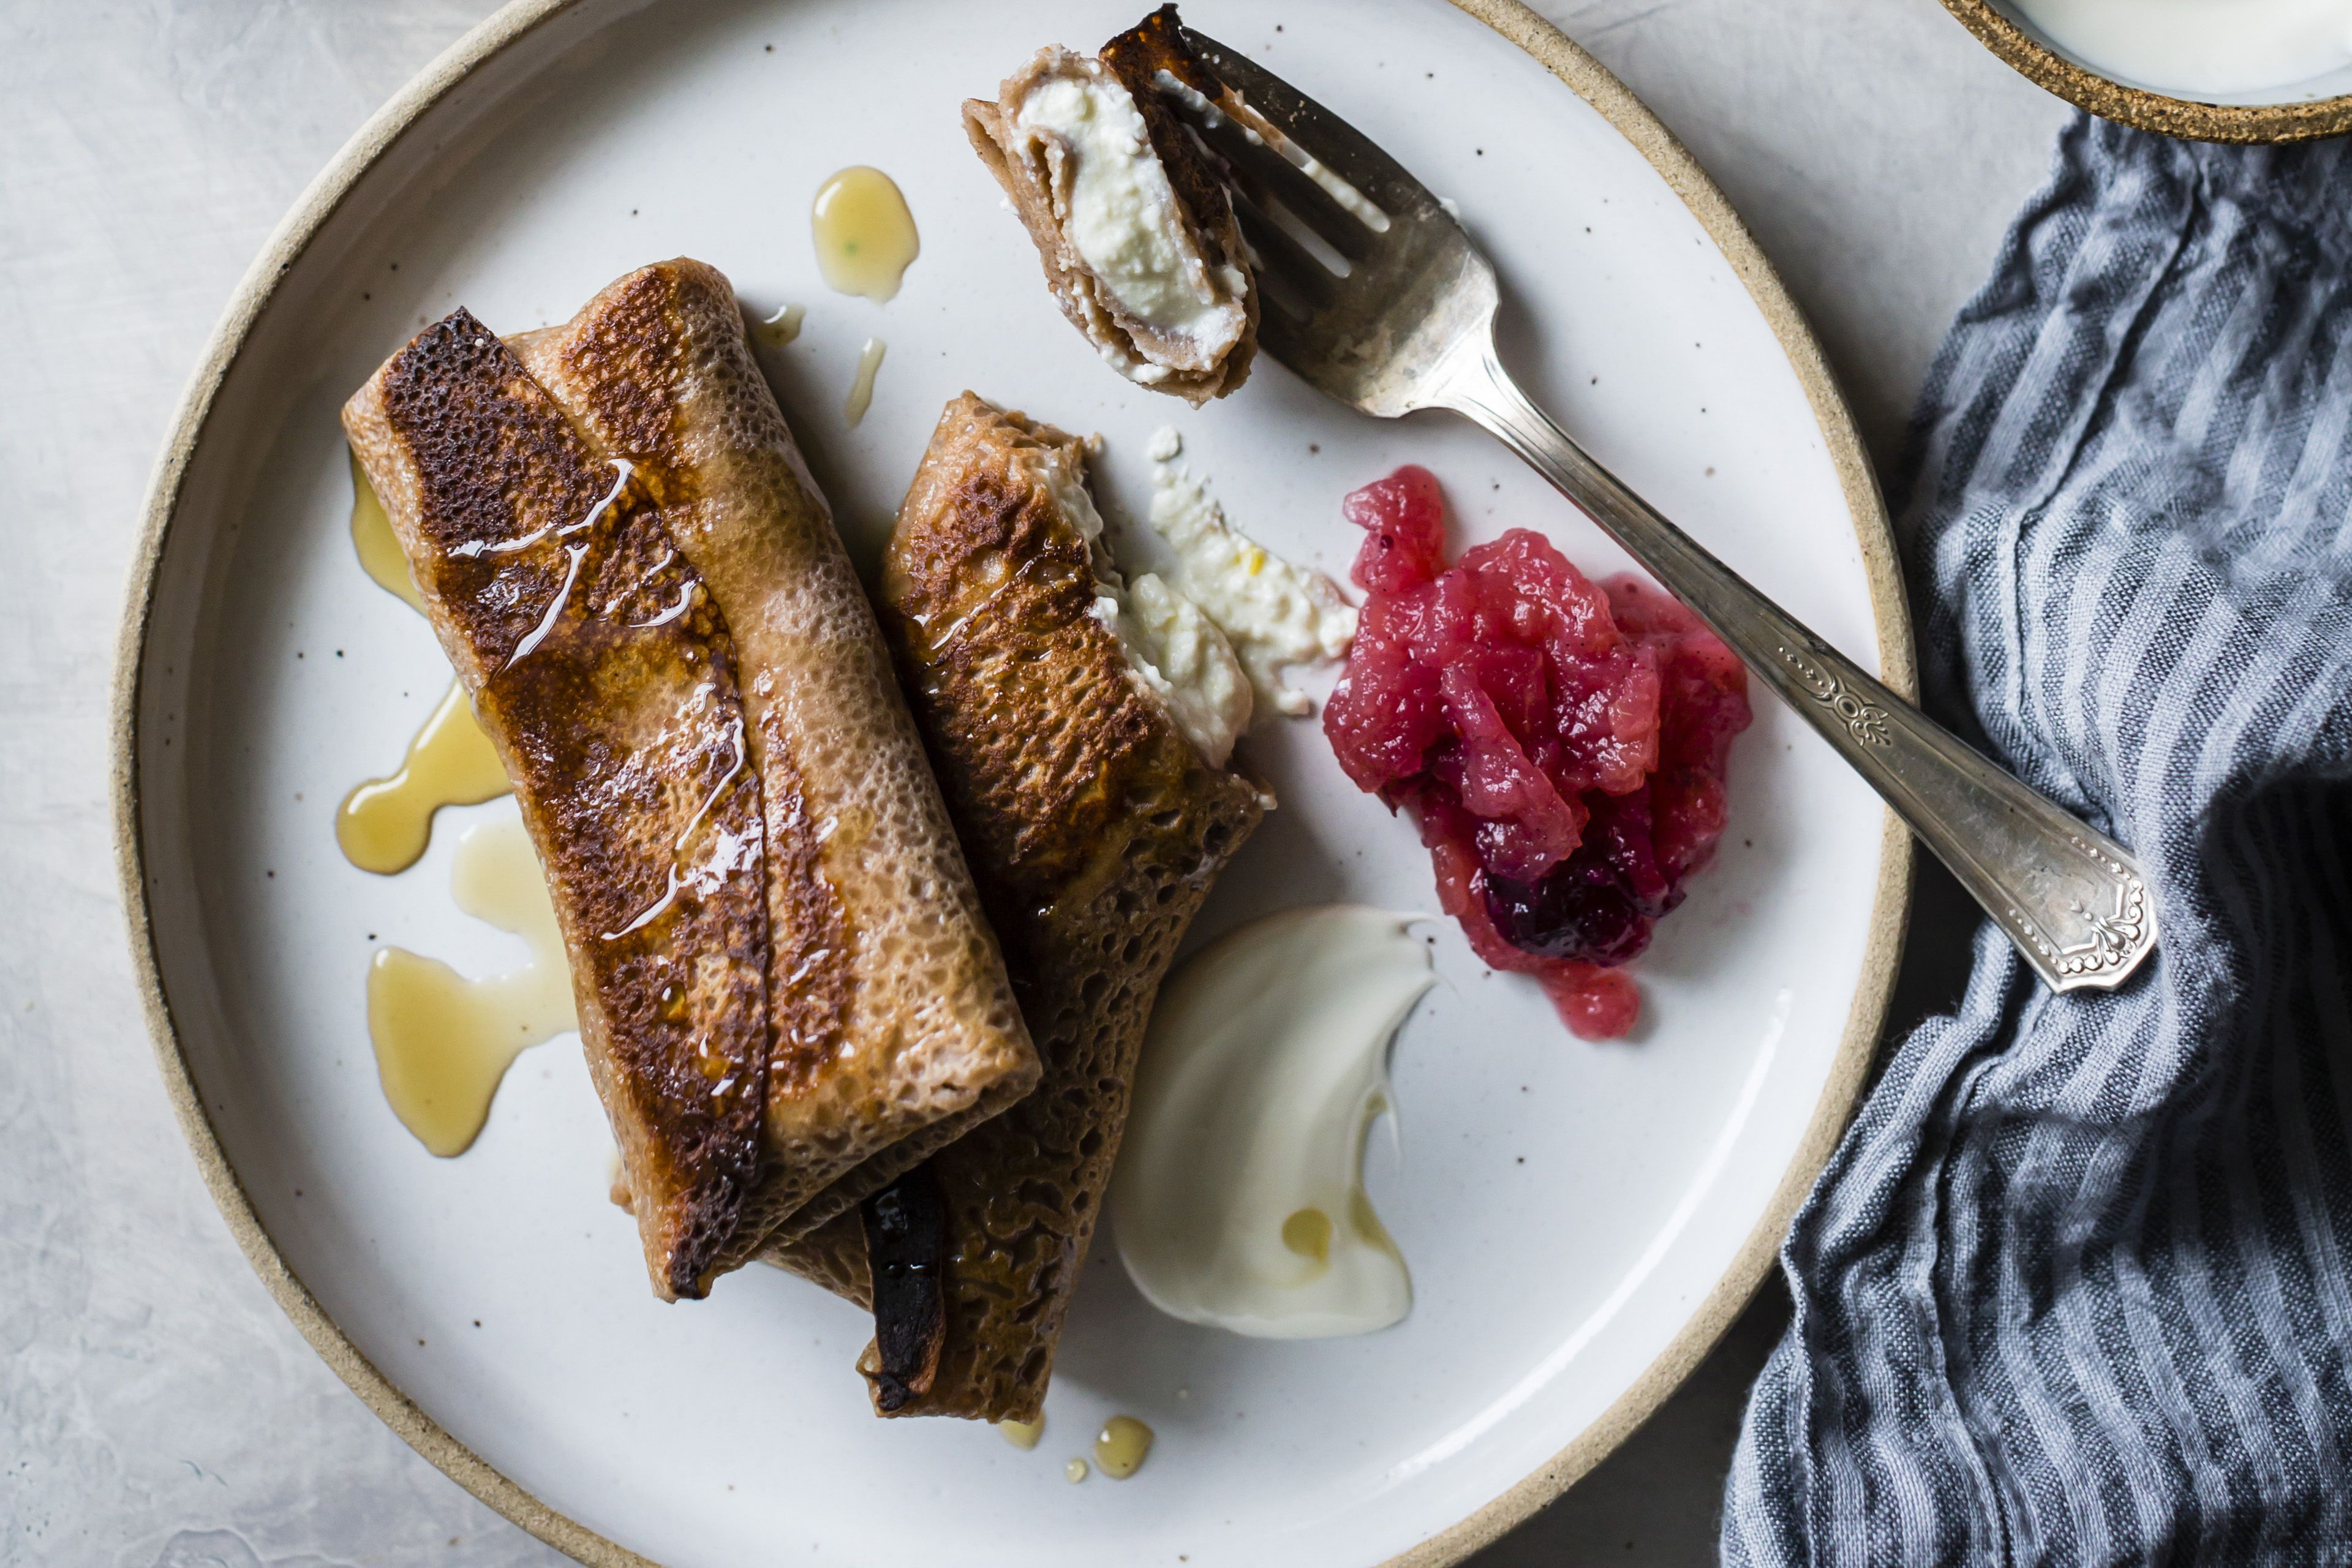 Cheese Blintzes Are Fantastic for Easter Brunch